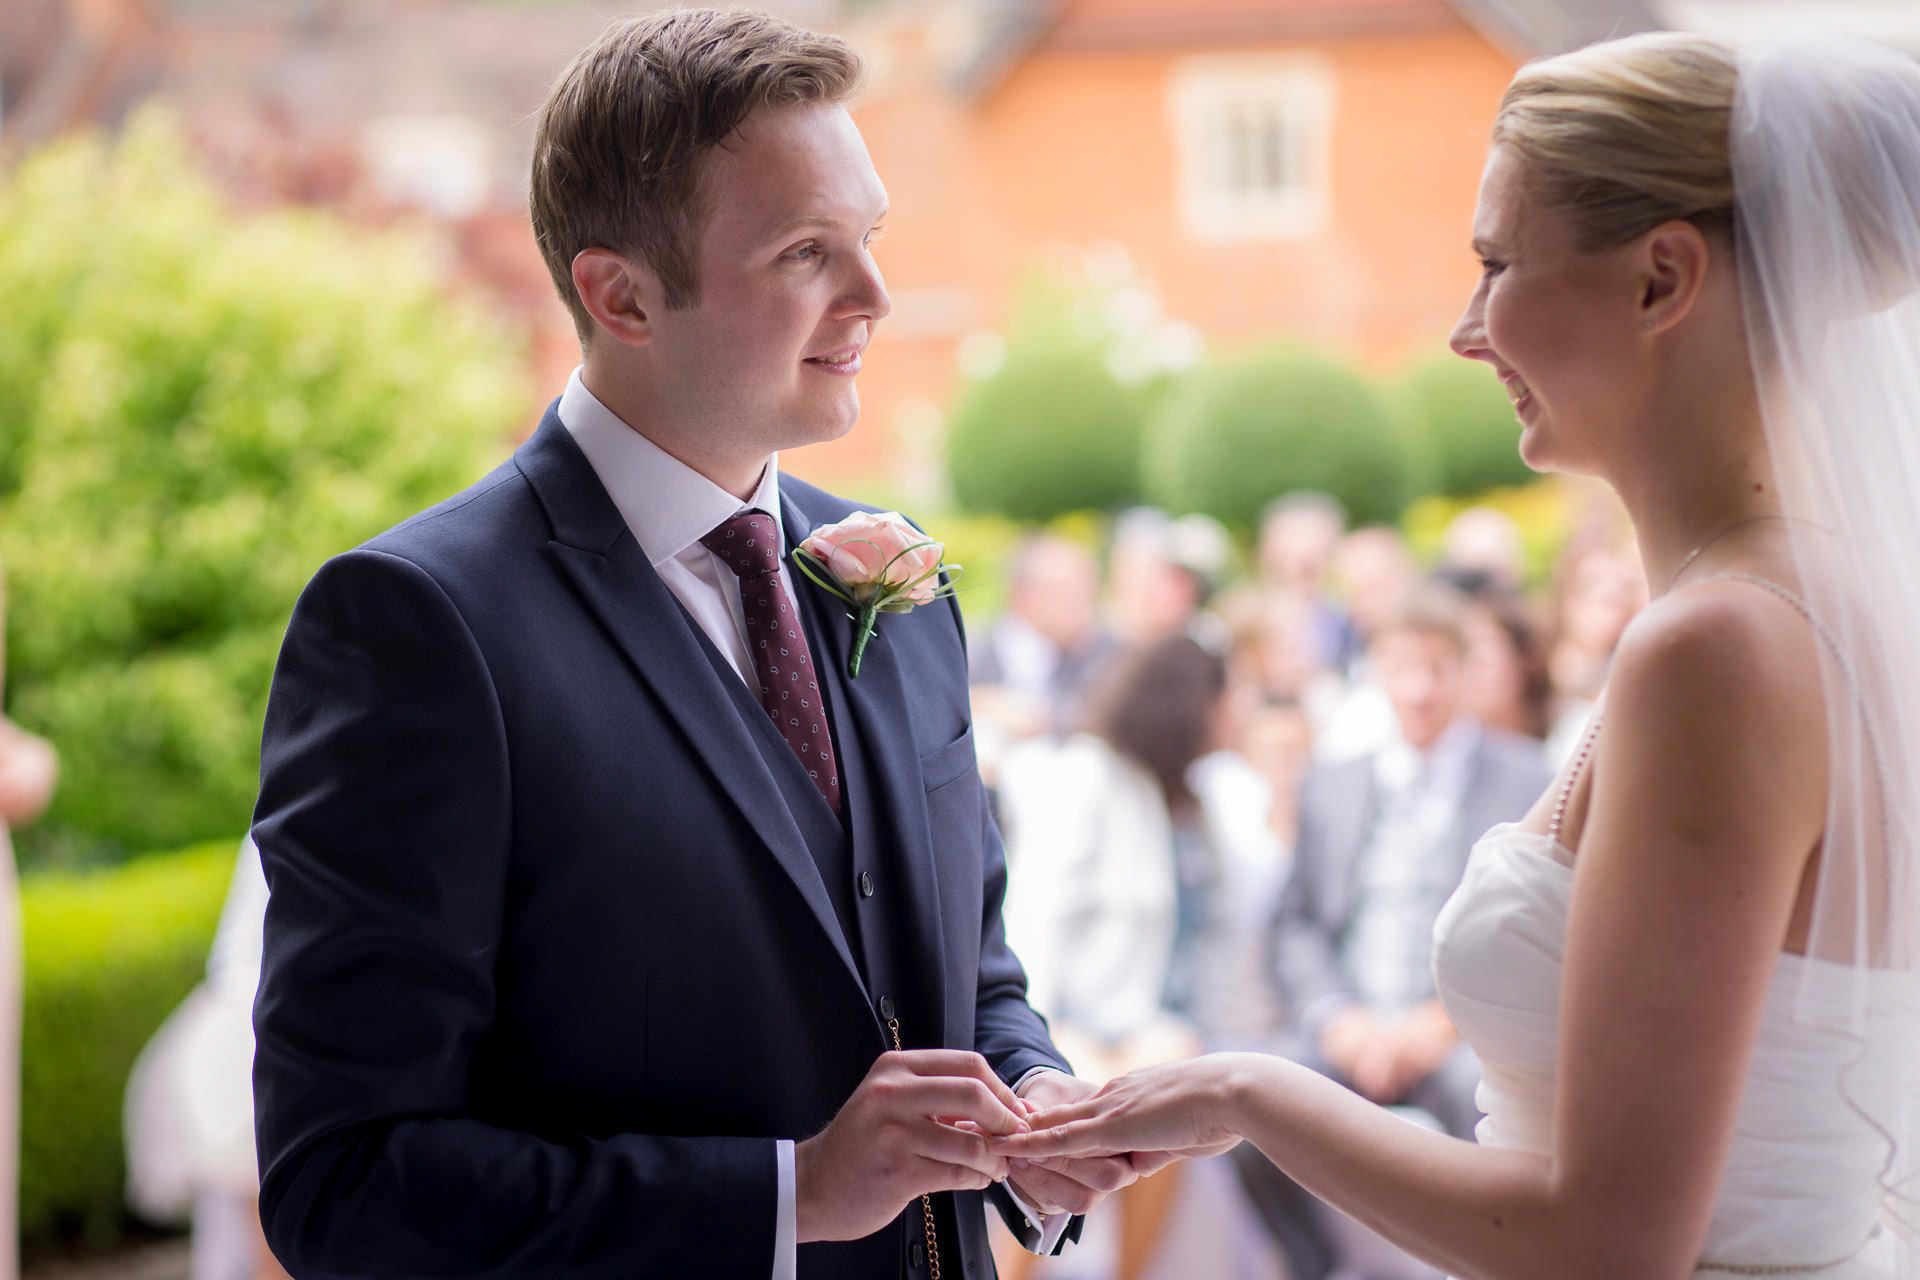 Wotton House wedding groom puts ring on the bride finger